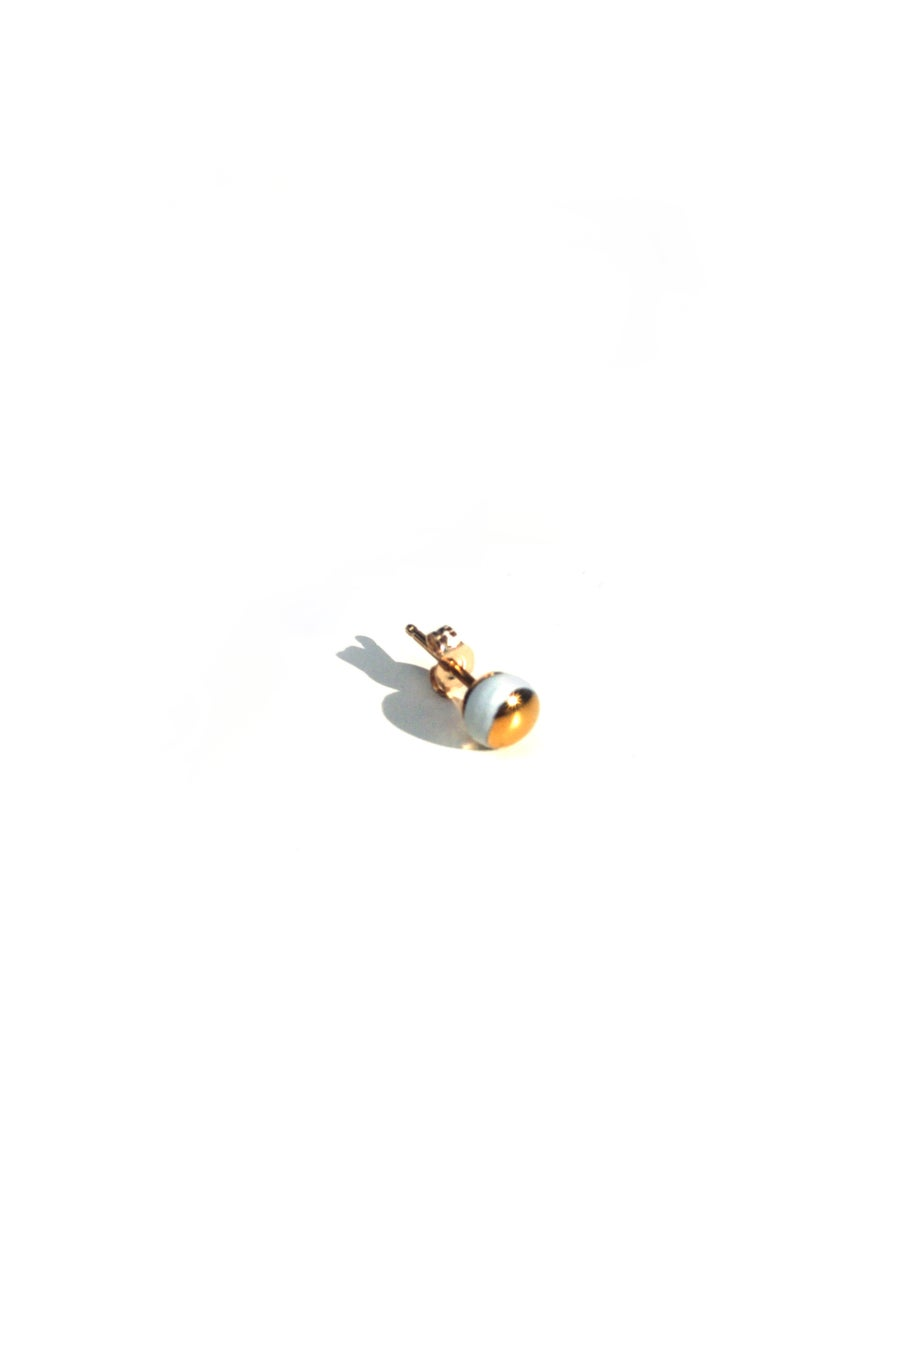 Image of 14k gold dot earring